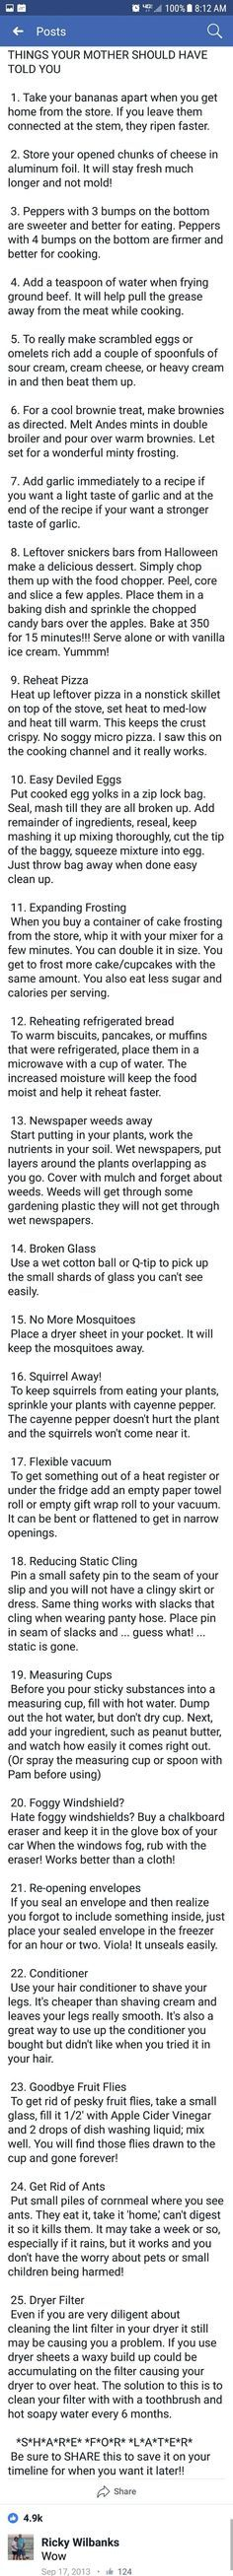 Now now. No need to blame the mother. These are just helpful tips and creative hacks.   d3b51a64f188a207a9f988e534938931.jpg 750×8,308 pixels